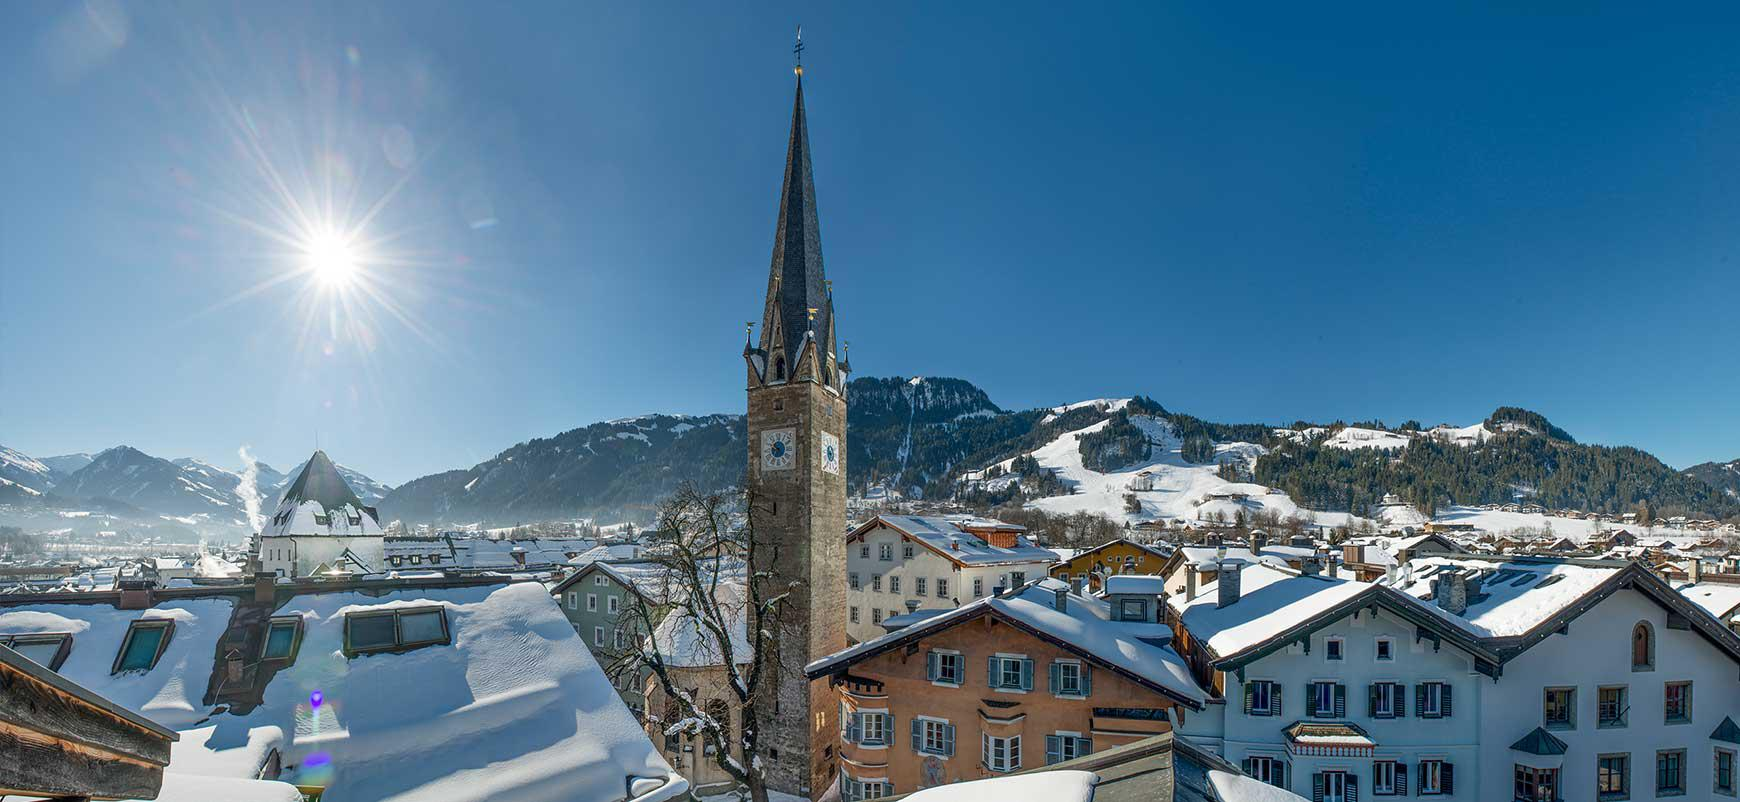 Popular Hotel in finest location in Kitzbuehel For Sale - Austria - Tirol